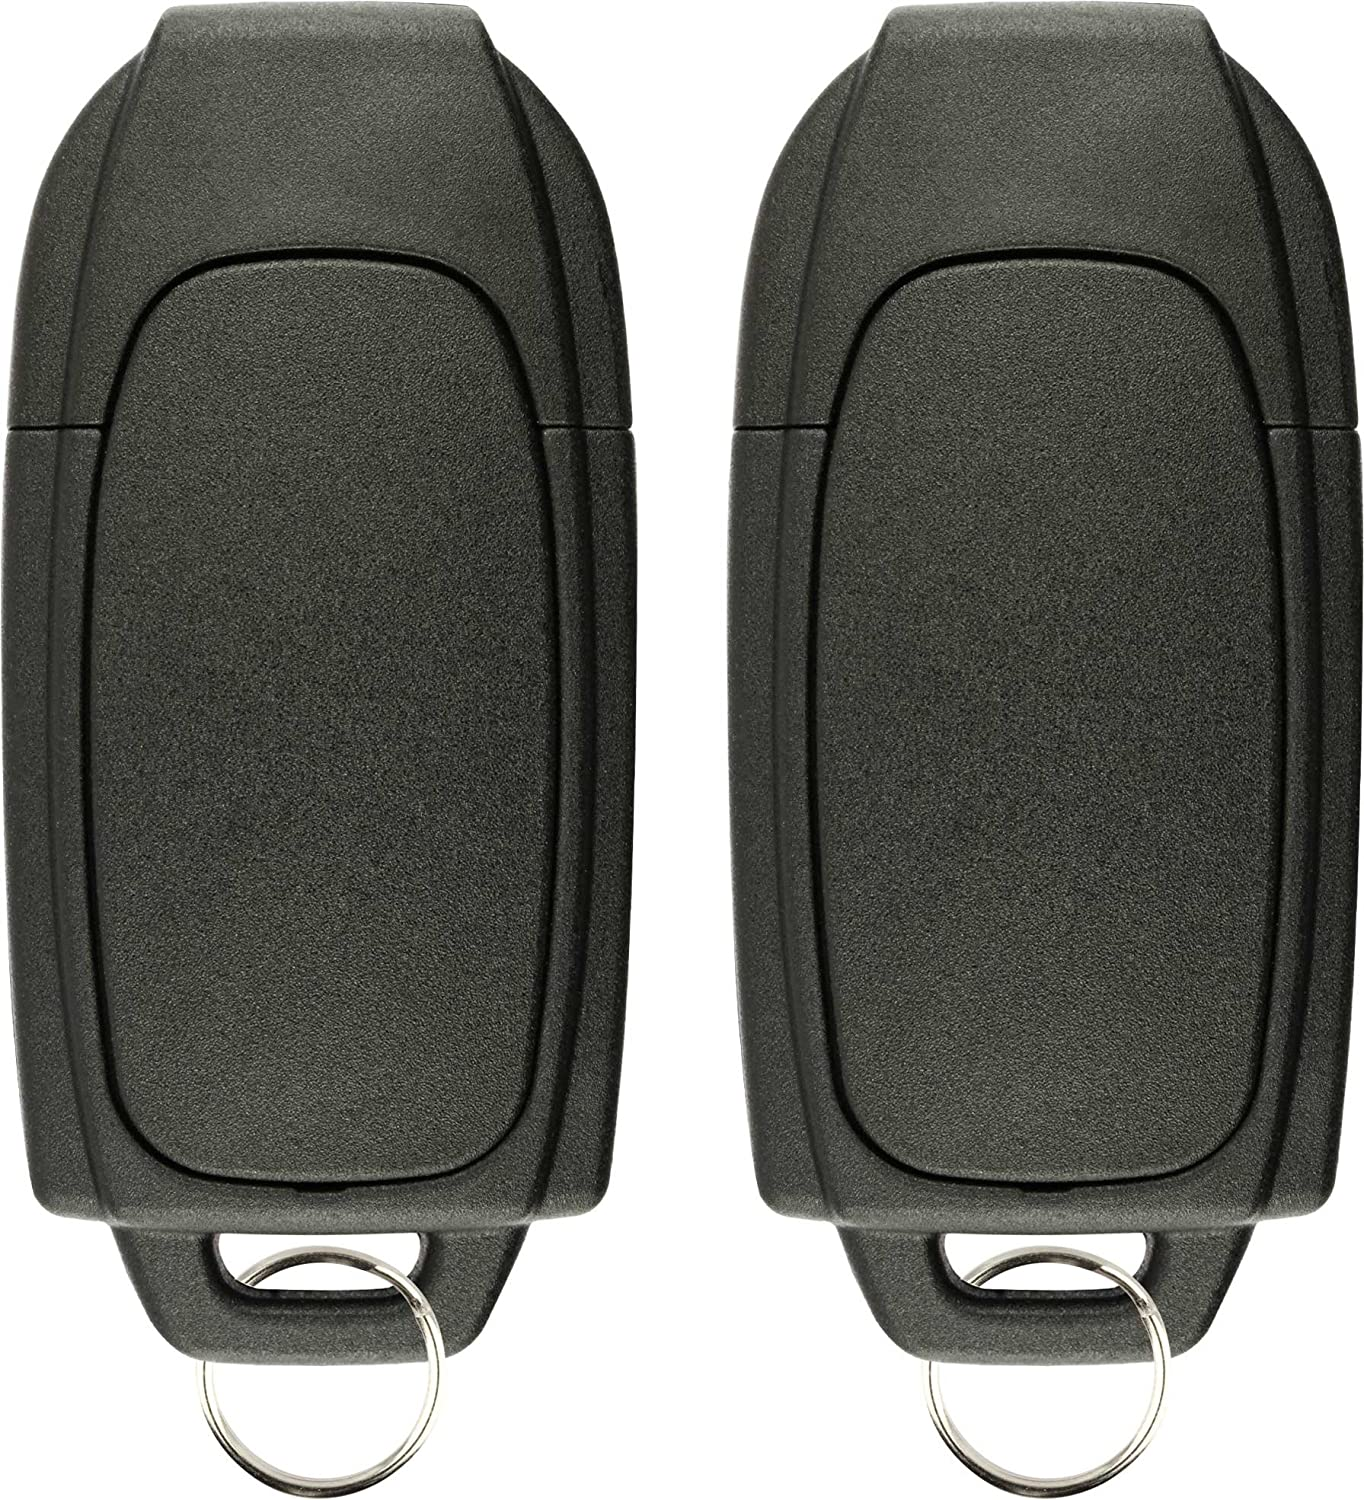 Pack of 2 KeylessOption Keyless Entry Remote Control Uncut Blank Car Ignition Key Fob Replacement for LQNP2T-APU